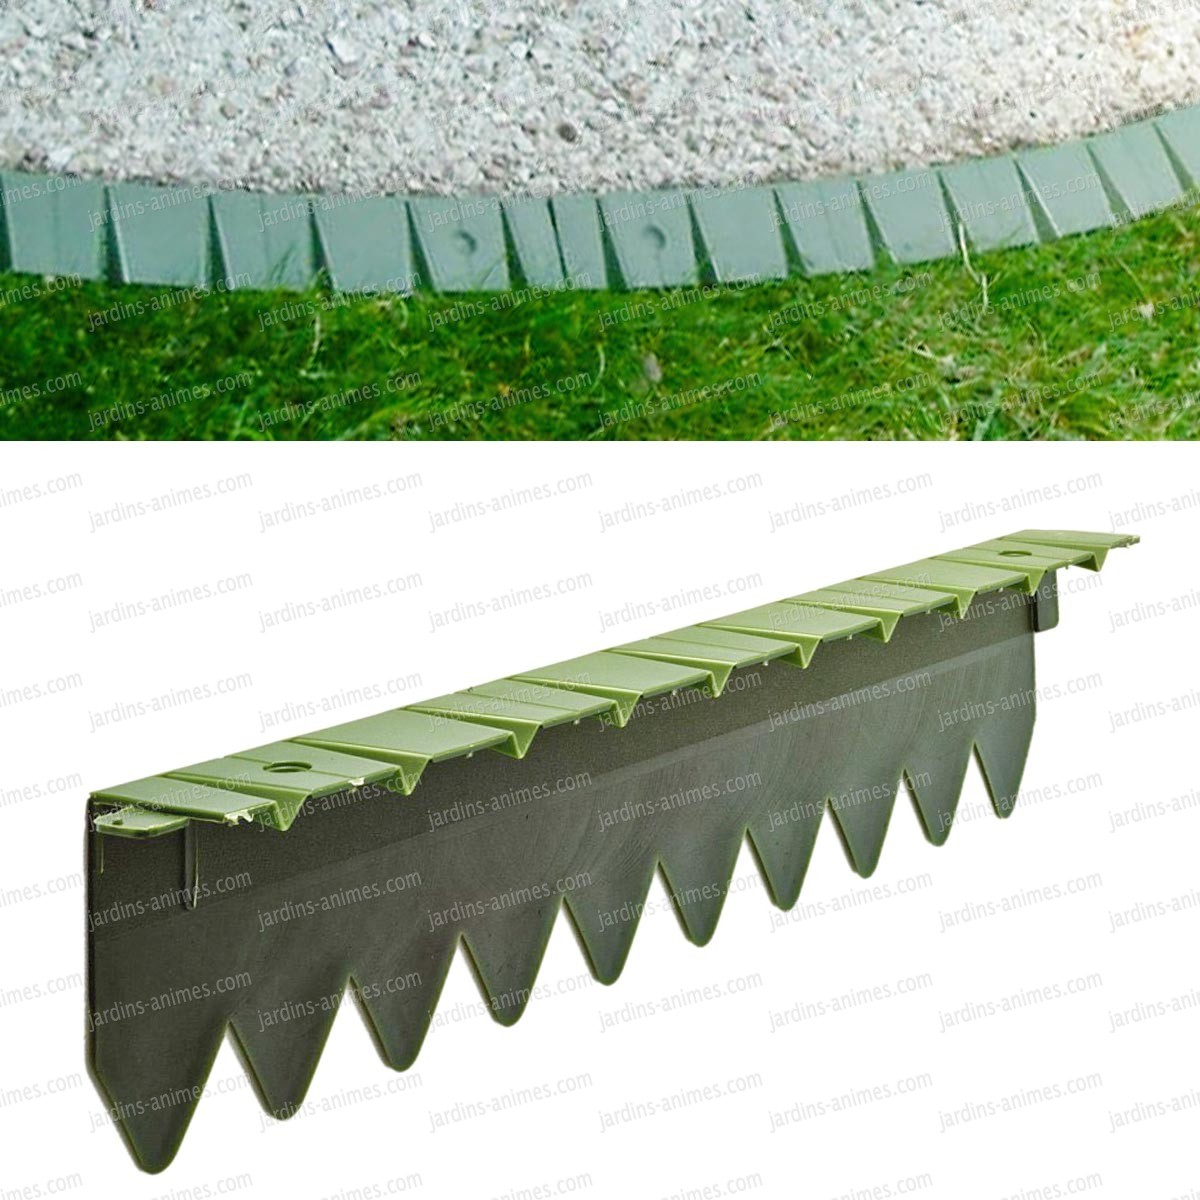 Bordurette pelouse flexible en plastique 6x50cm - Bordure de Jardin